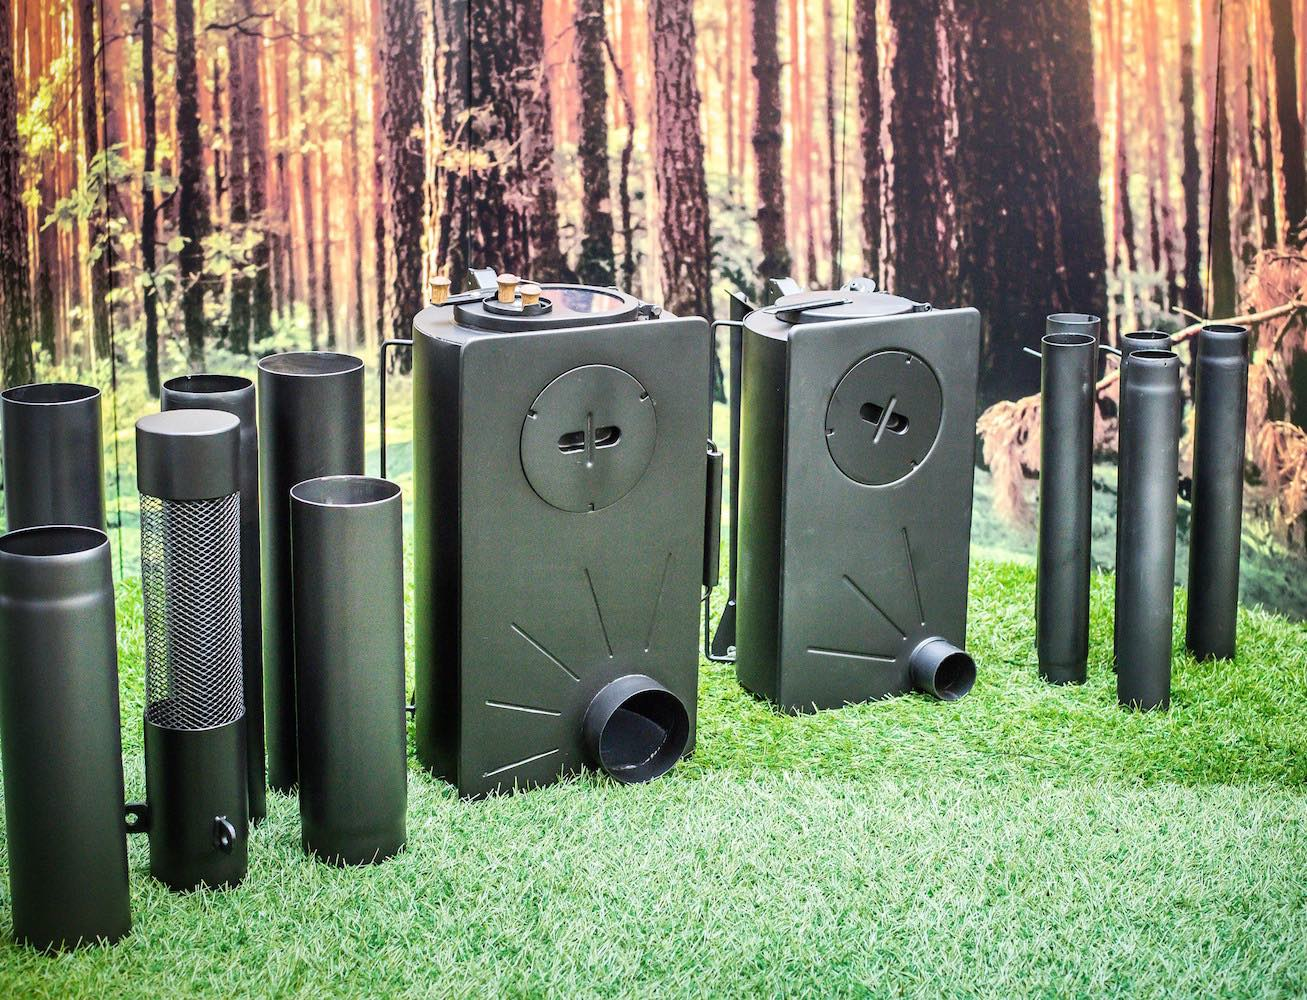 Frontier Plus – The Next Generation Portable Woodburning Stove